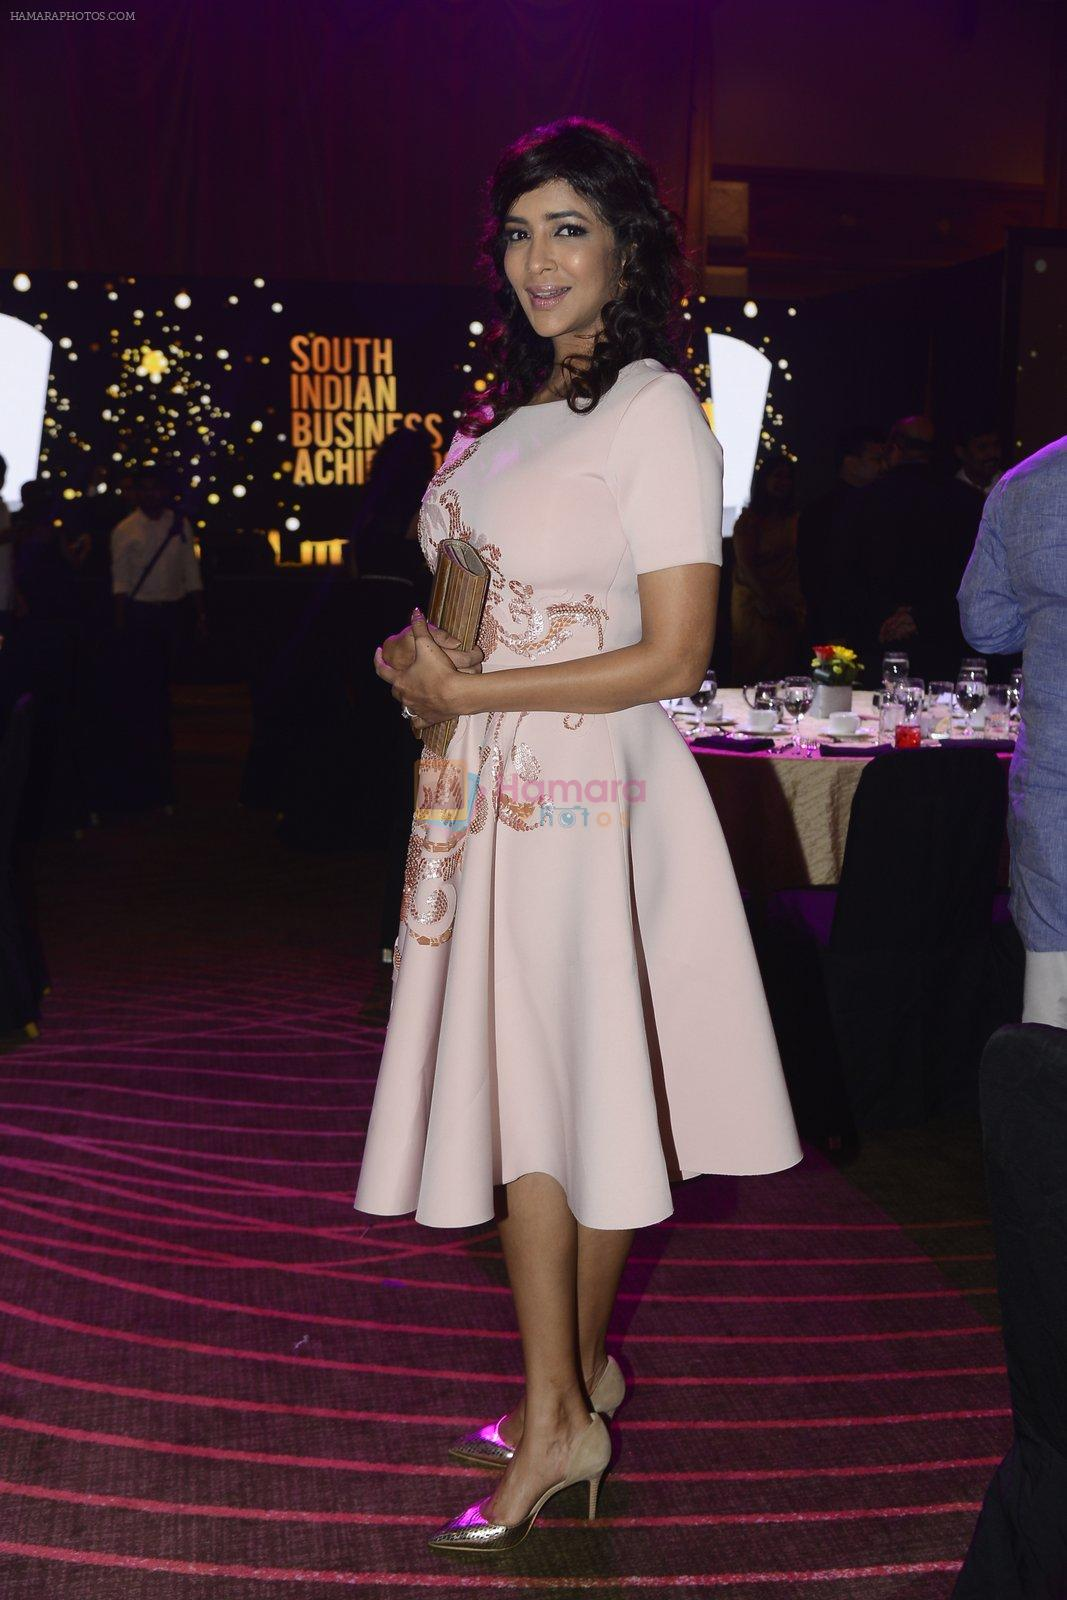 Lakshmi Manchu at SIIMA's South Indian Business Achievers awards in Singapore on 29th June 2016